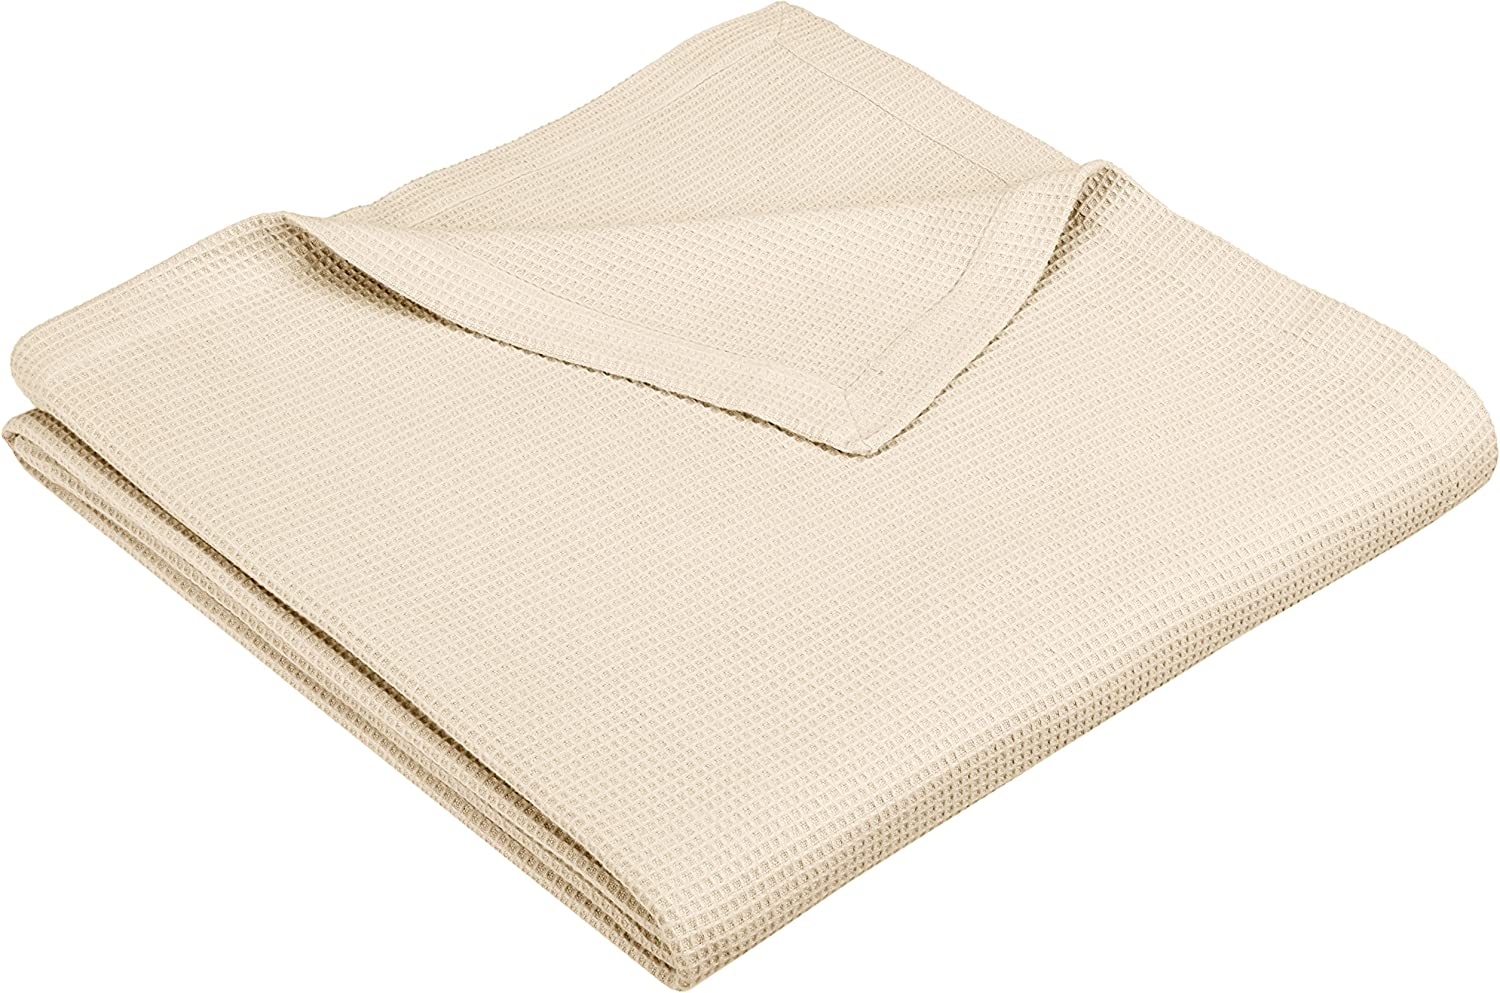 Pinzon Cotton Waffle Weave Blanket - Twin, Natural